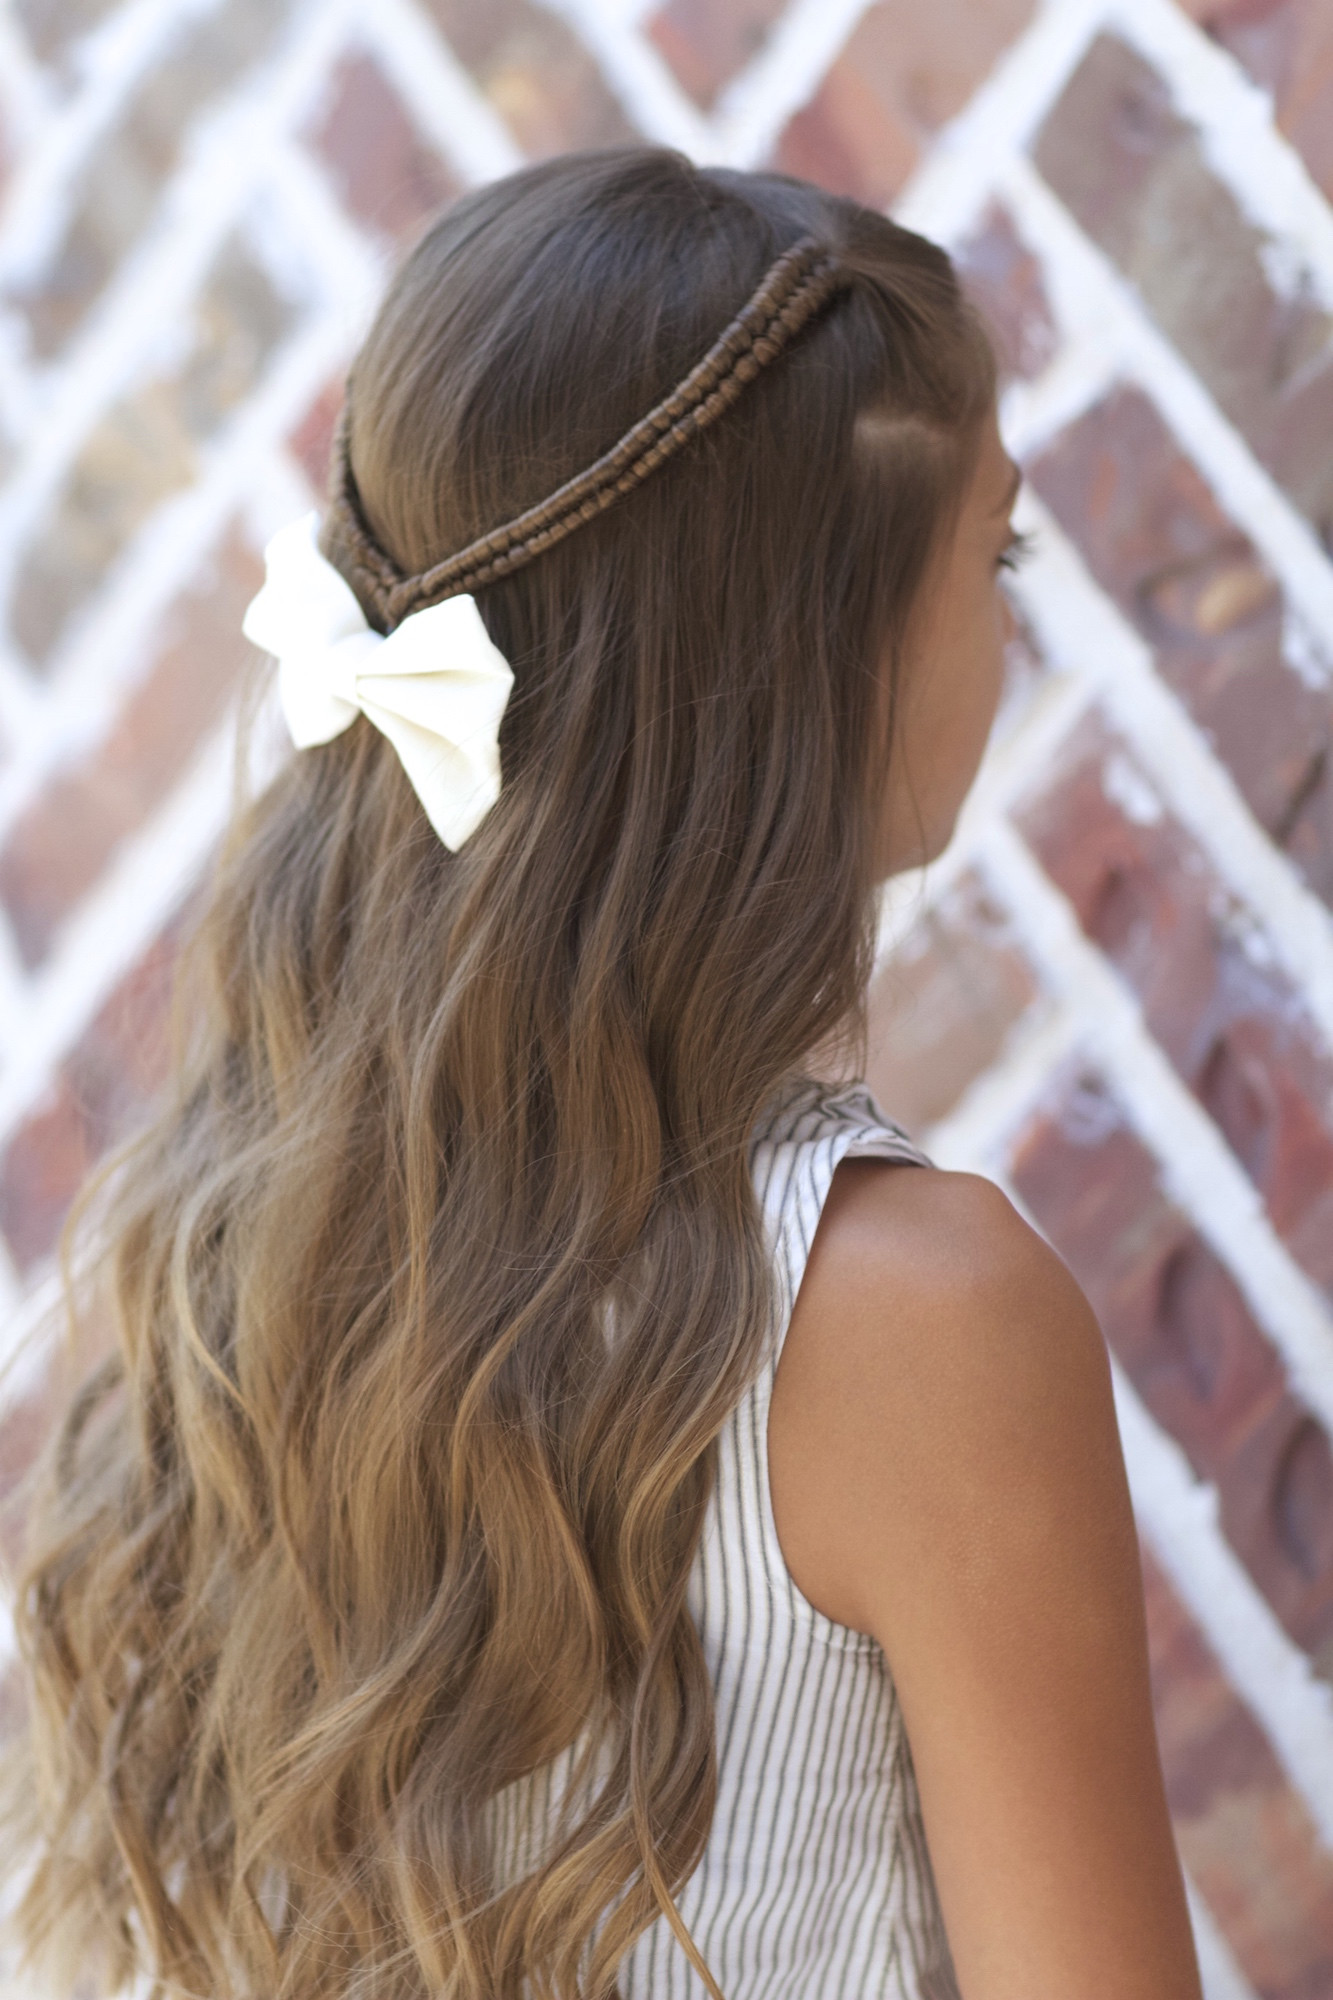 Best ideas about Girls Hair Cut Styles . Save or Pin Infinity Braid Tieback Back to School Hairstyles Now.